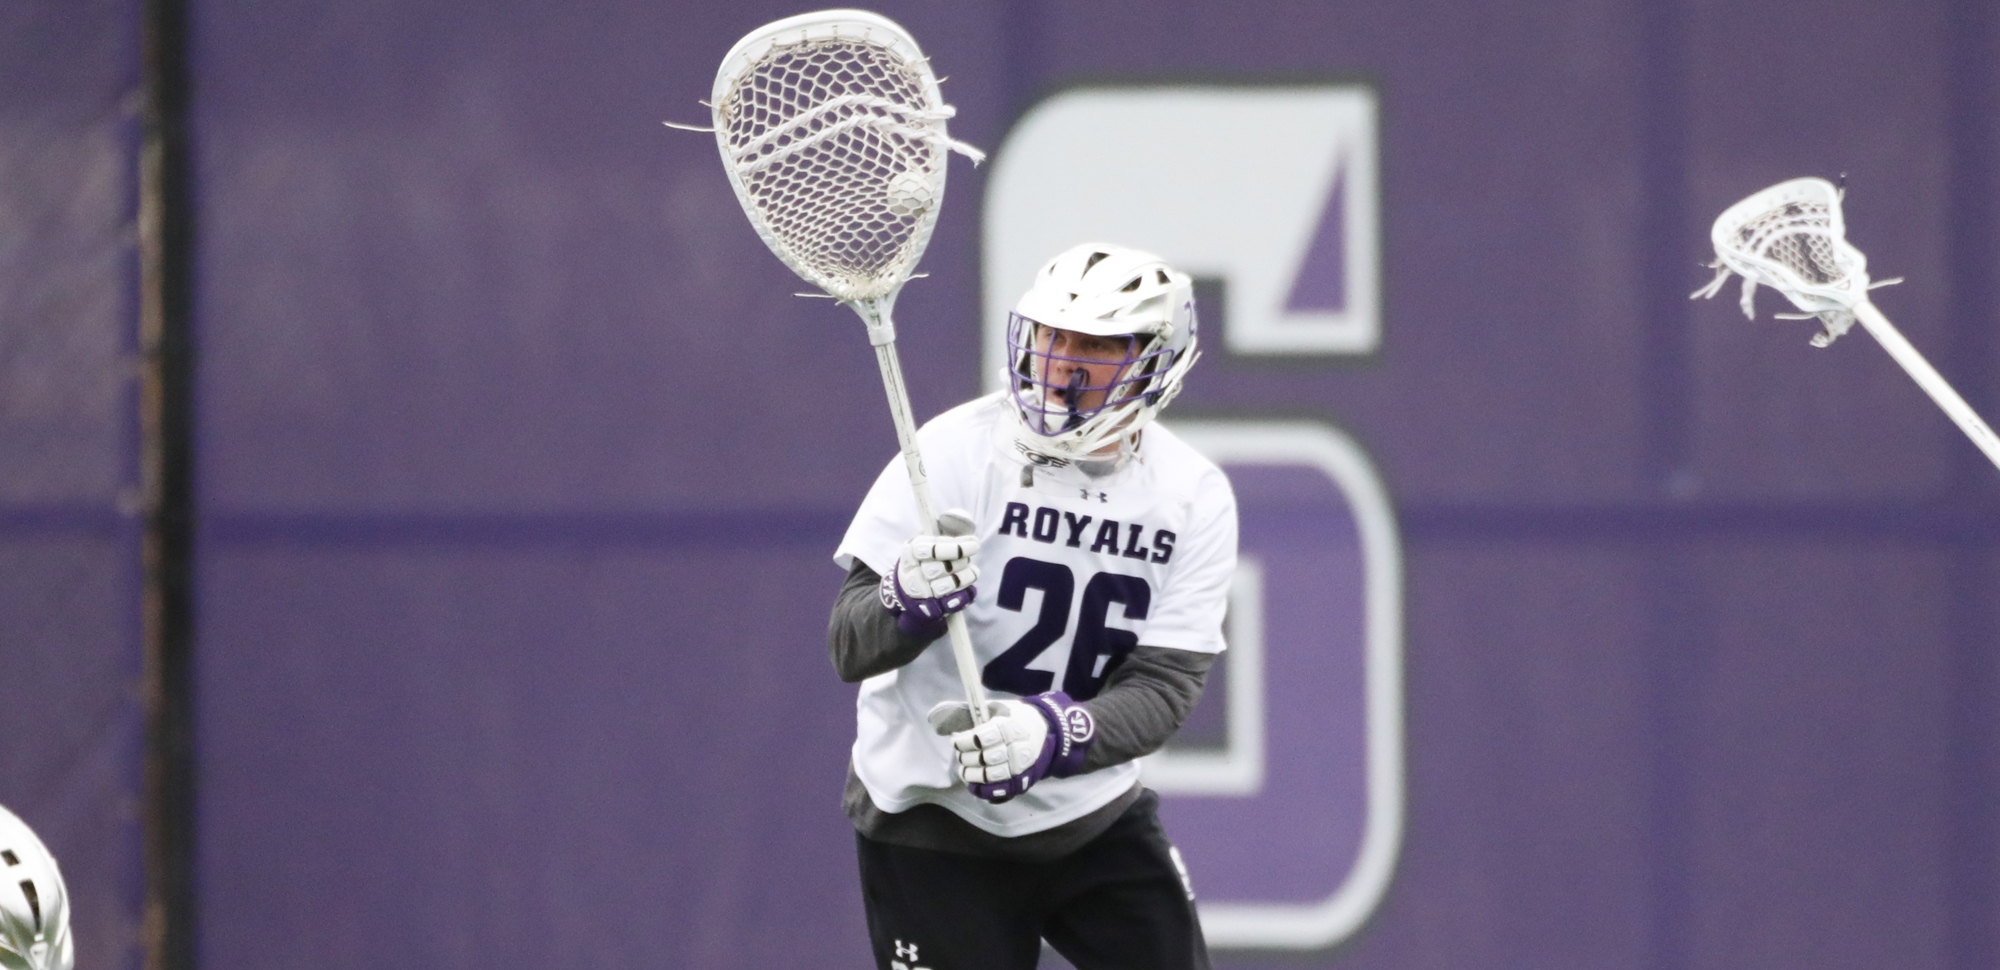 Sophomore Shayne Fallon tied a career-high with 14 saves on Sunday at Sewanee. © Photo by Timothy R. Dougherty / doubleeaglephotography.com